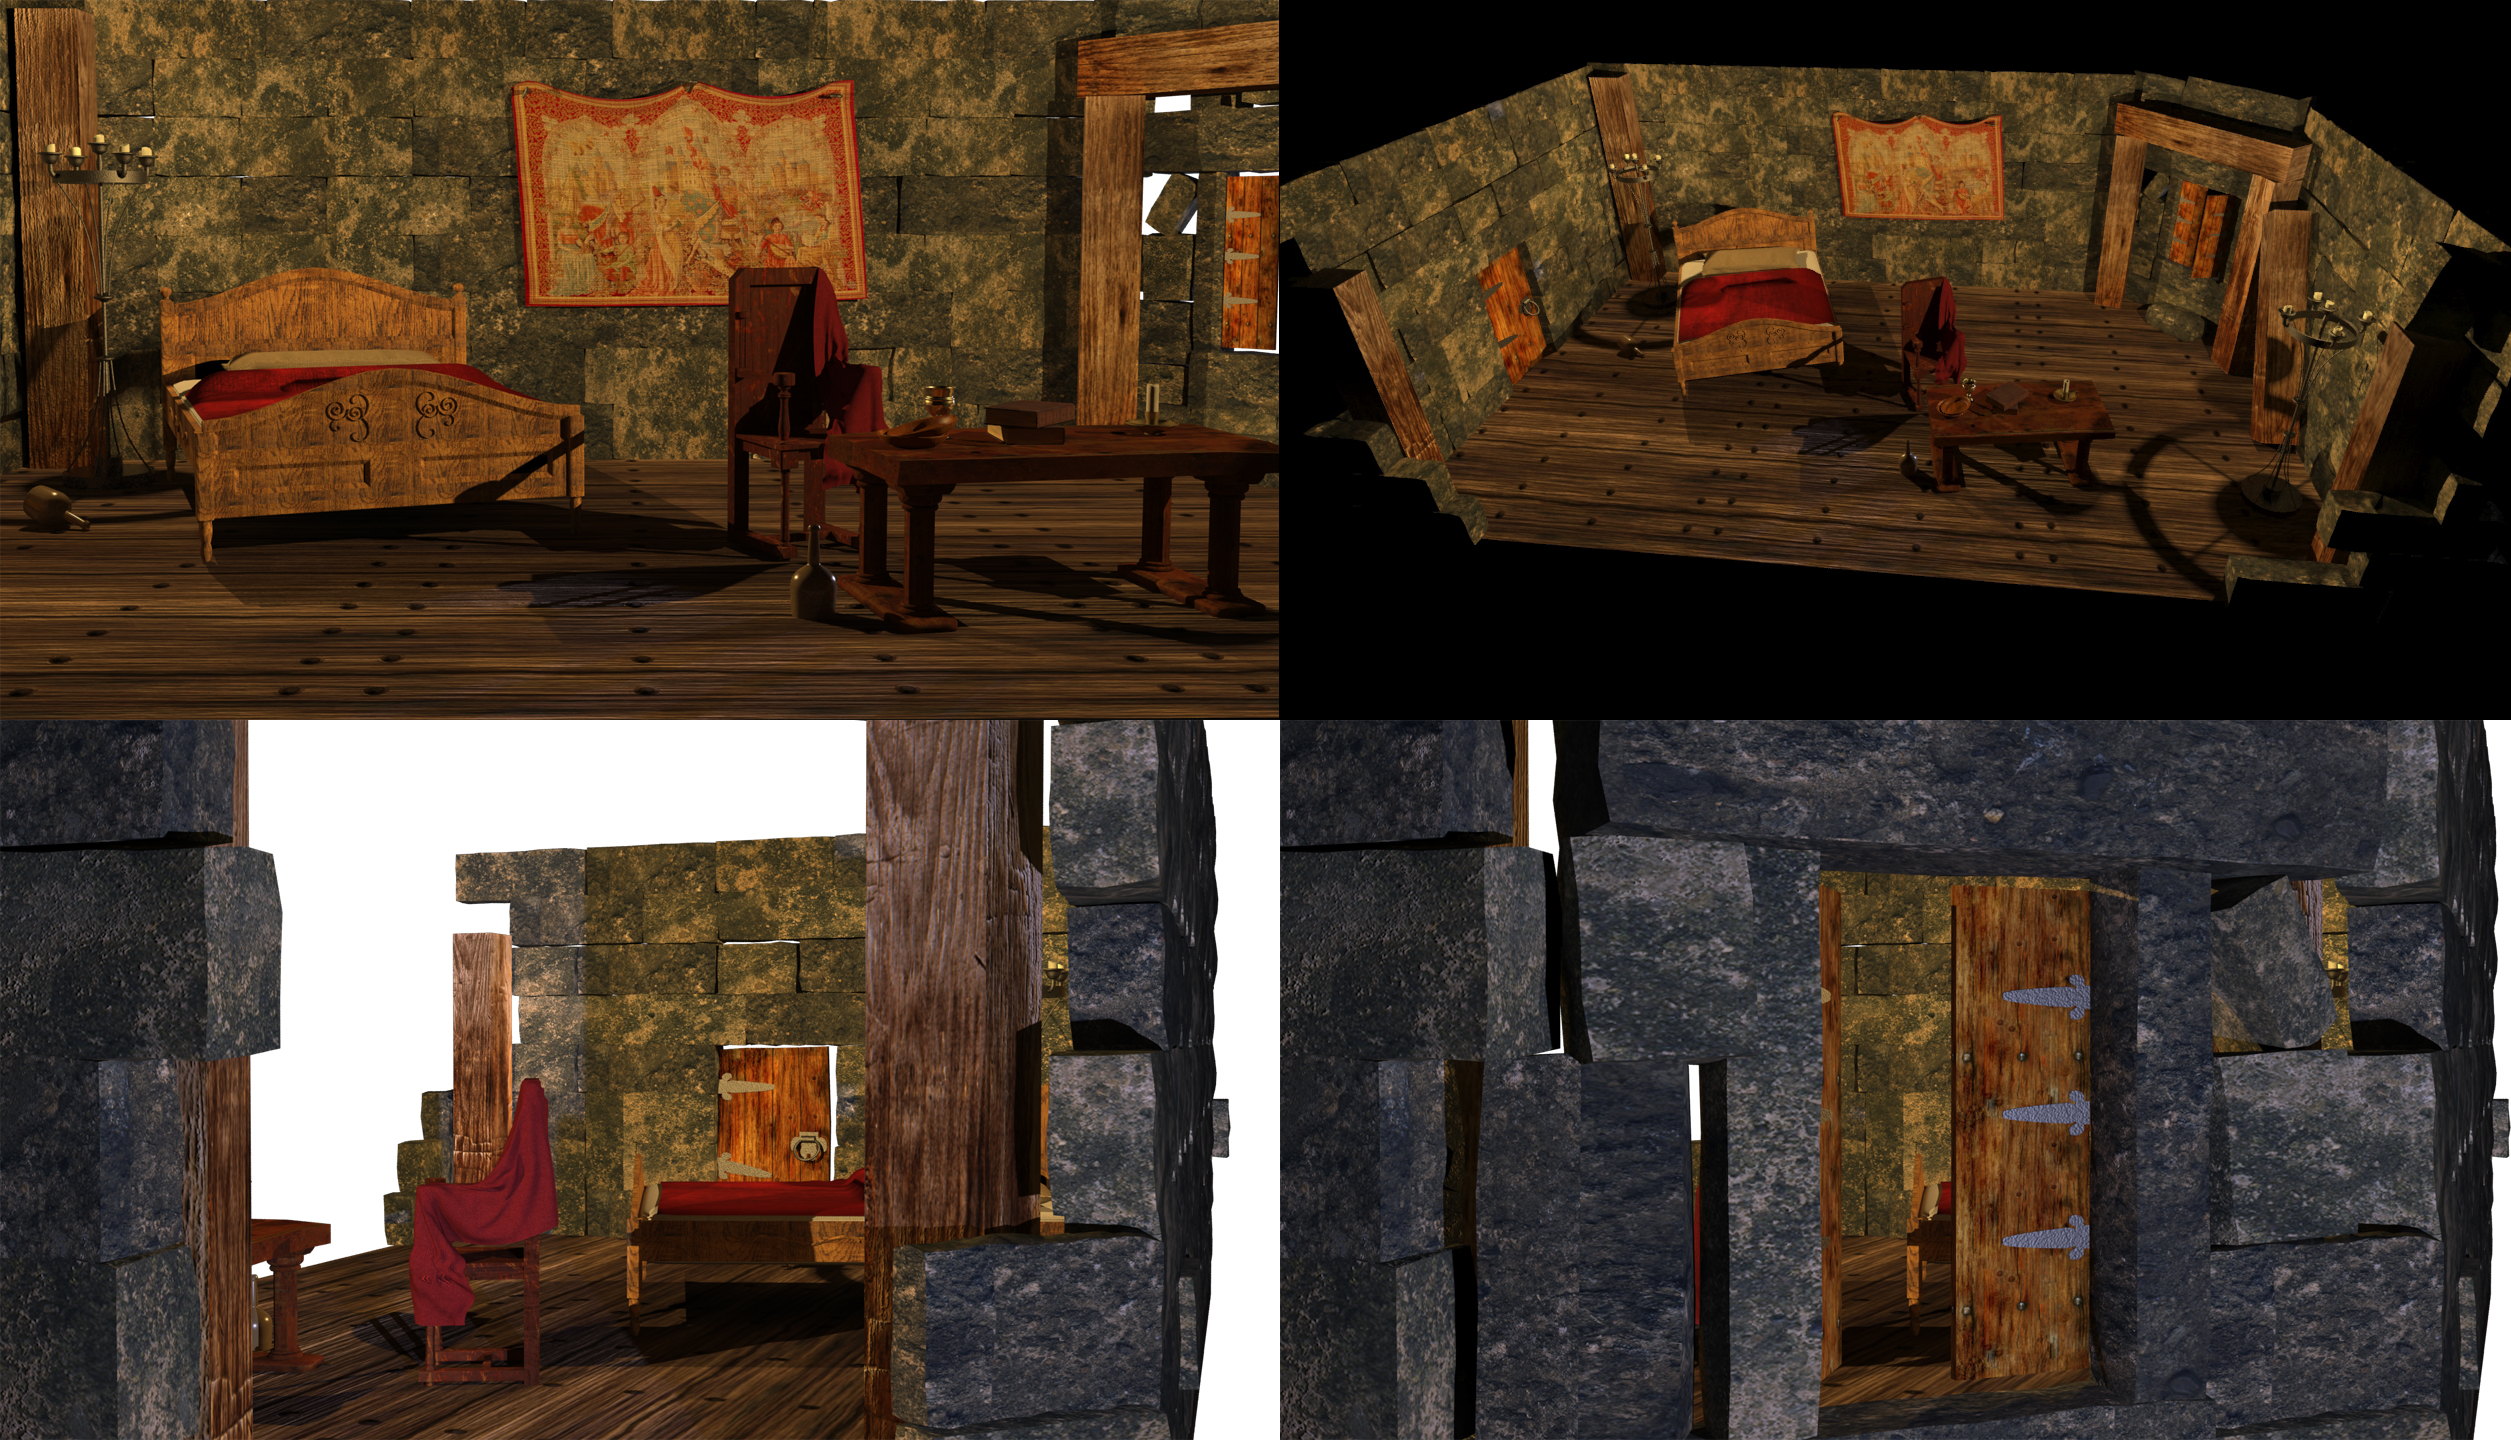 Decayed Castle Room by Jingleboy